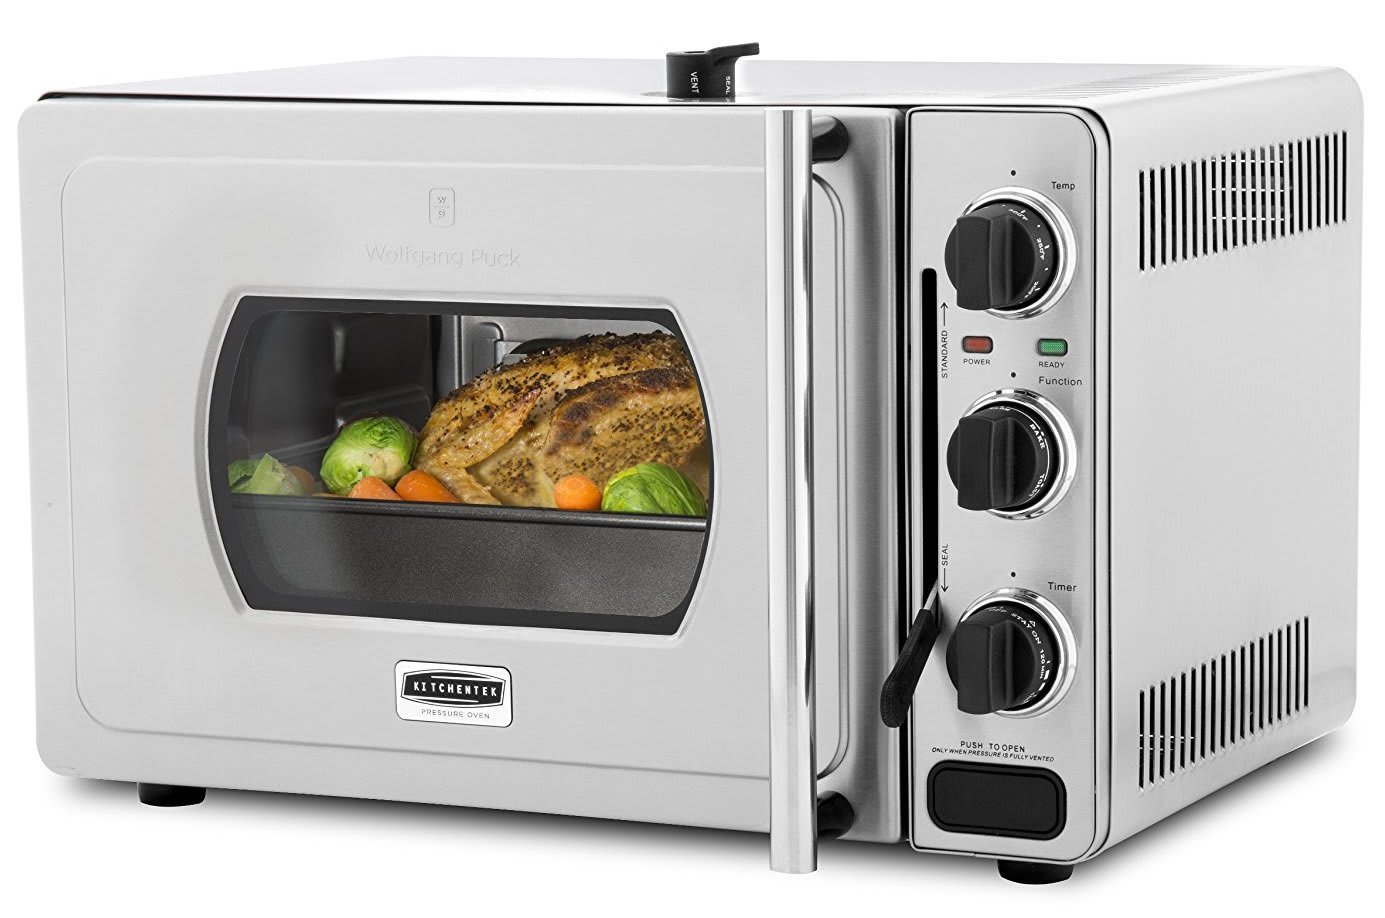 Wolfgang Puck Pressure Oven for $88 + $5 s&h